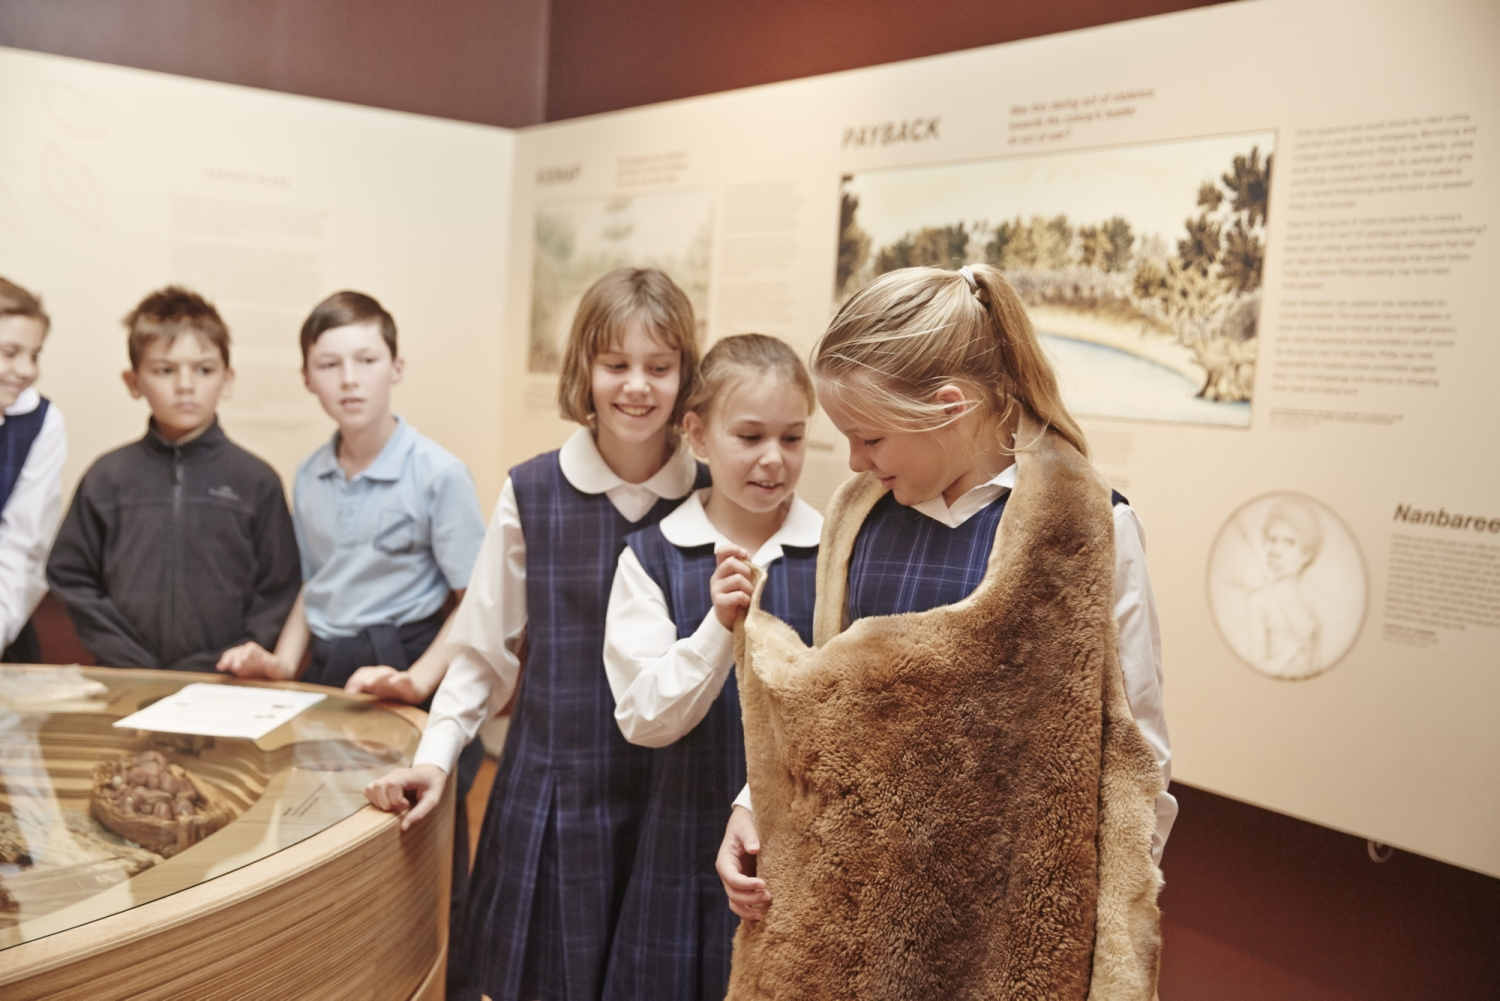 Kids in uniform trying on kangaroo skin cloak in exhibition space.